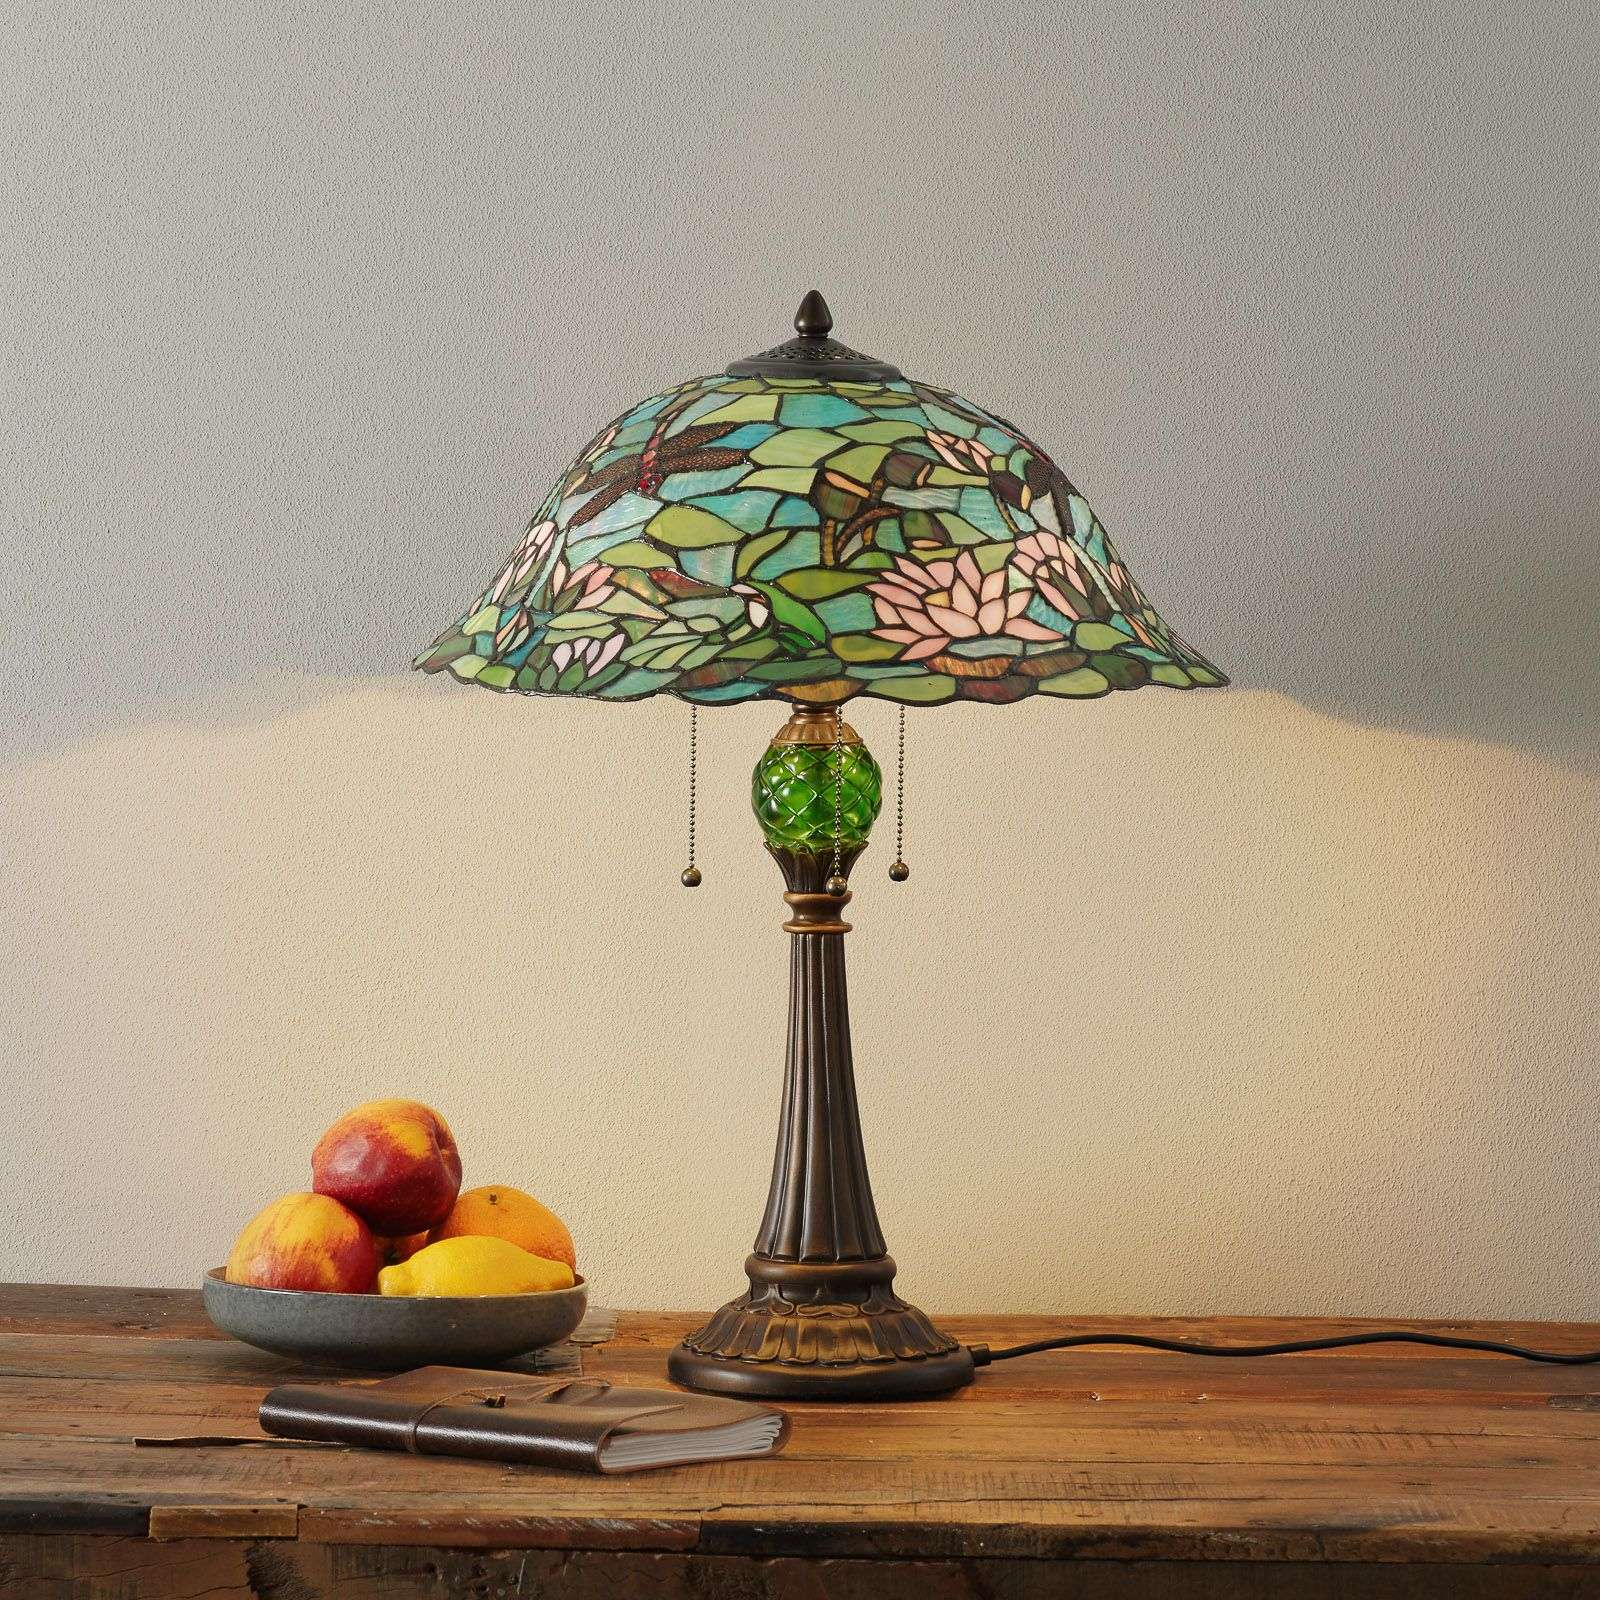 Lampe à poser Waterlily style Tiffany-6064020-31